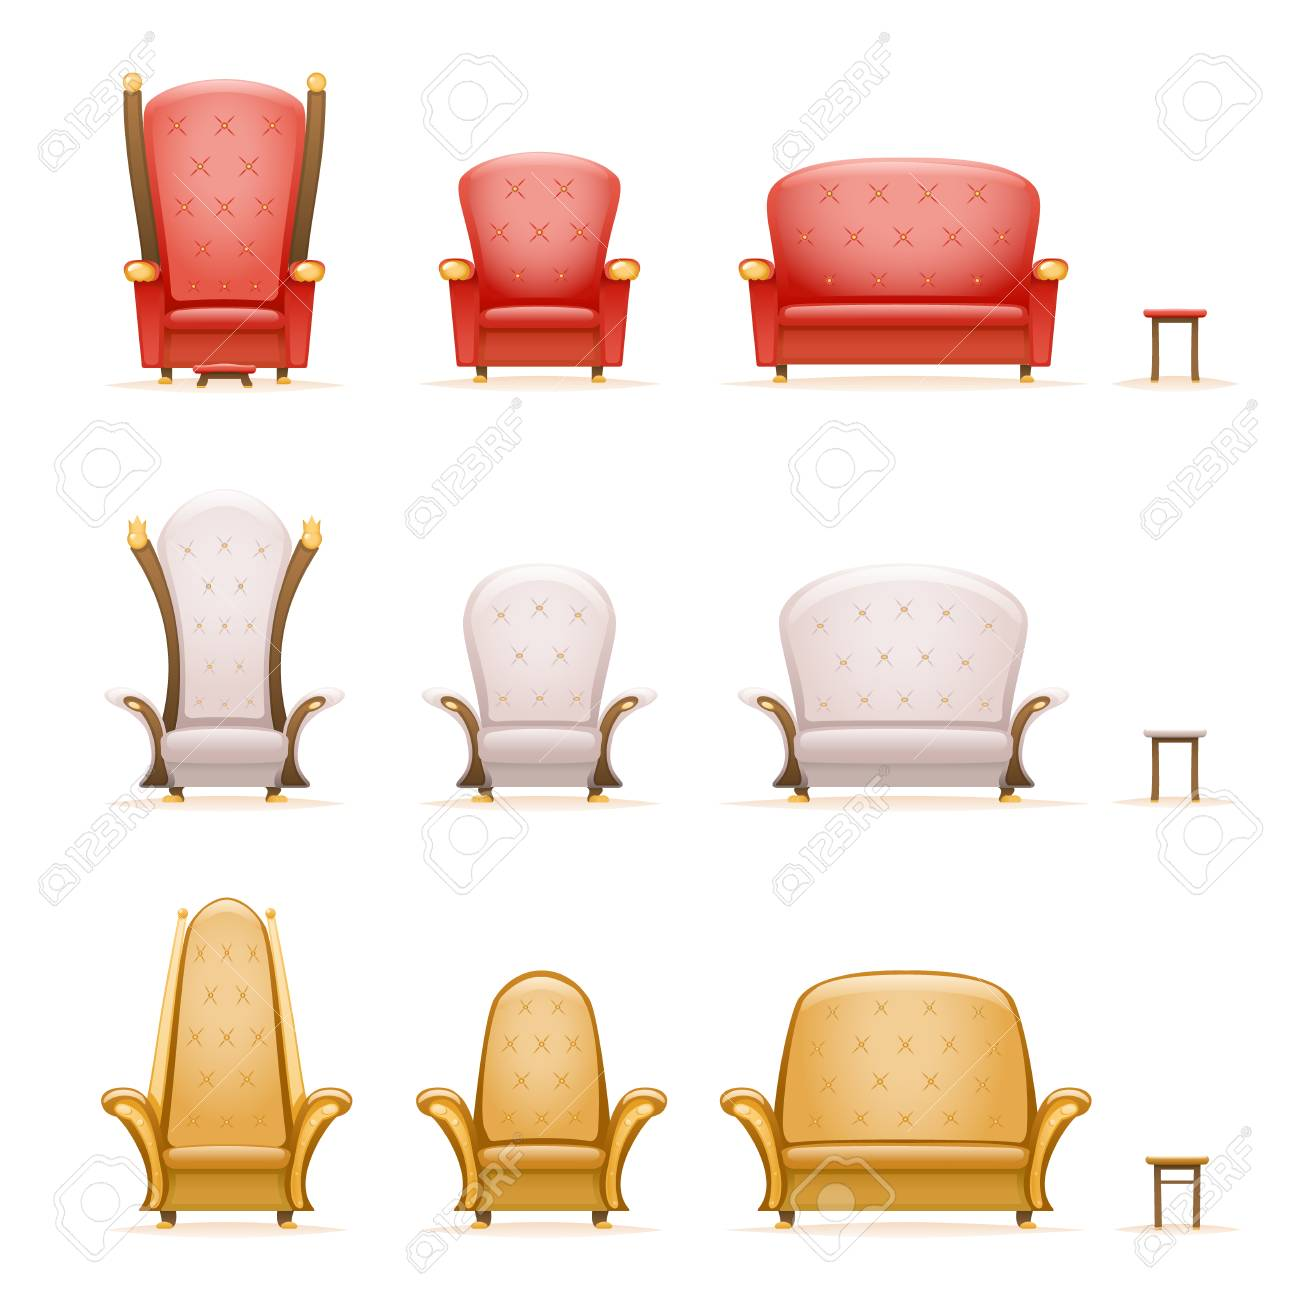 Superb Armchair Throne Sofa Couch Chair Fairytale Cartoon 3D Isolated Gmtry Best Dining Table And Chair Ideas Images Gmtryco